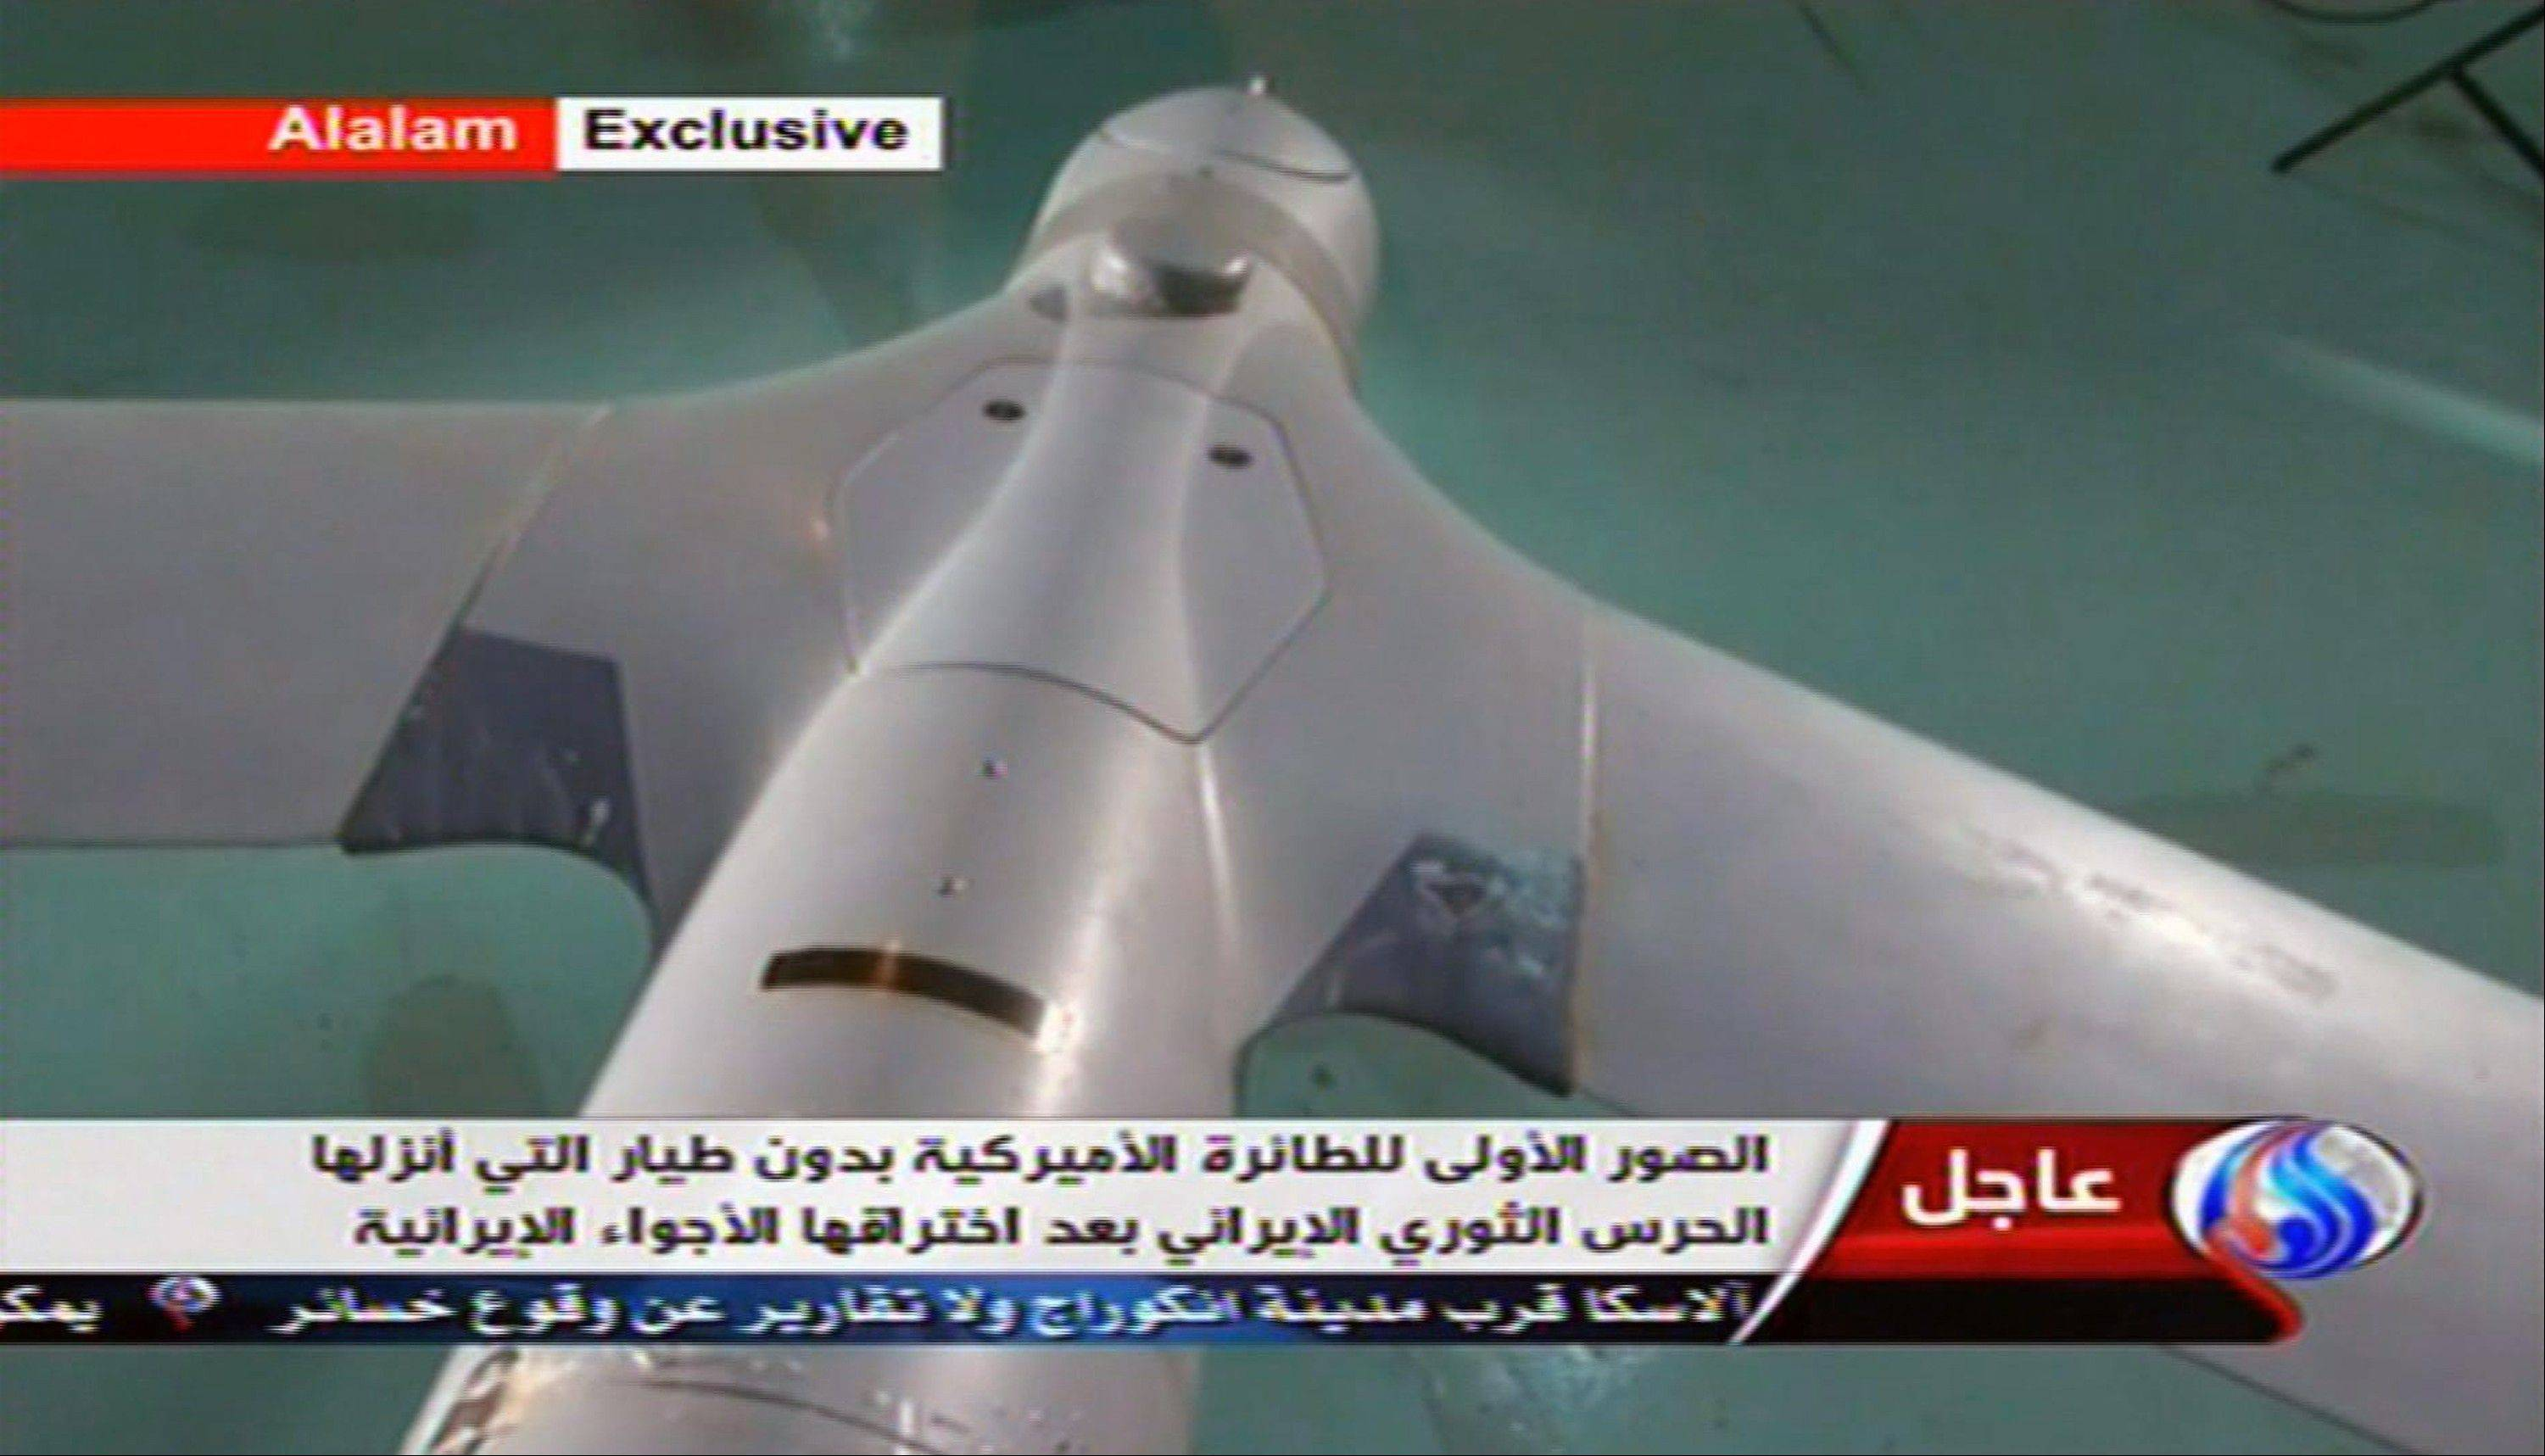 "This image taken from the Iranian state TV's Arabic-language channel Al-Alam shows what they purport to be an intact U.S. drone aircraft captured after it entered Iranian airspace over the Persian Gulf. The U.S. Navy said all its unmanned aircraft in the region were ""fully accounted for,"" but a prominent lawmaker in Tehran said Wednesday Iran has material evidence to prove that it has captured an American unmanned aircraft."